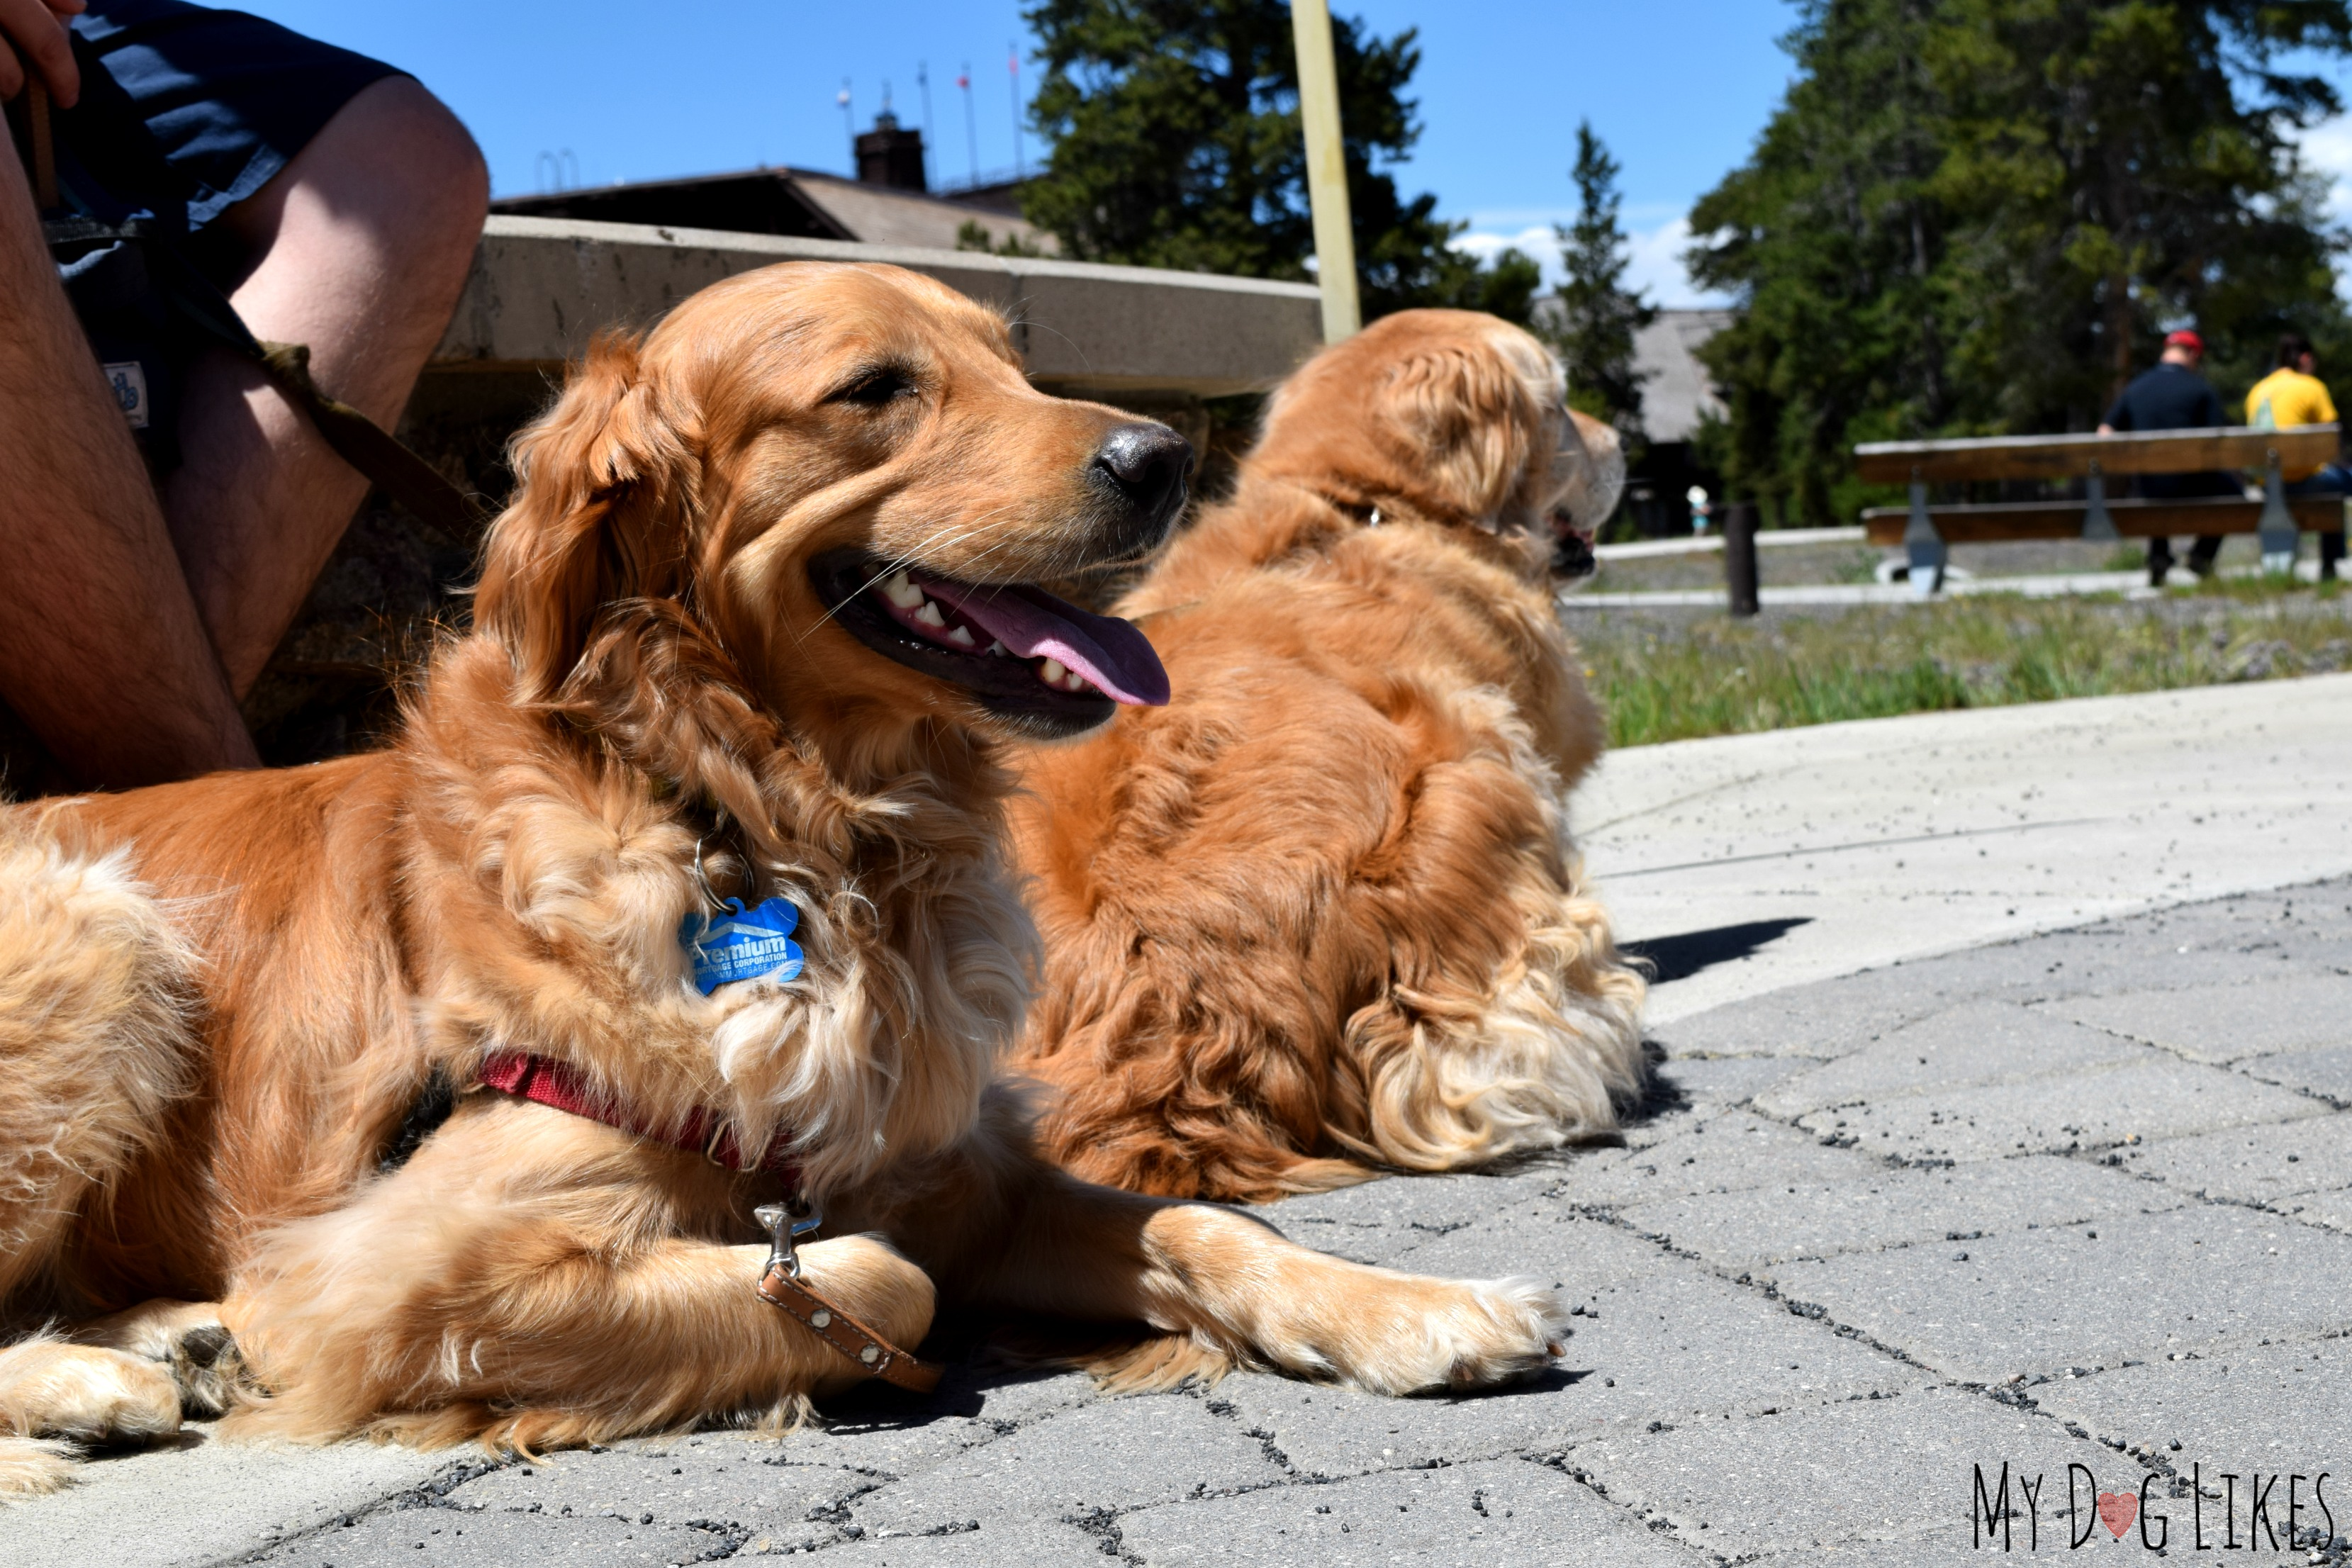 Visiting Yellowstone National Park with Dogs